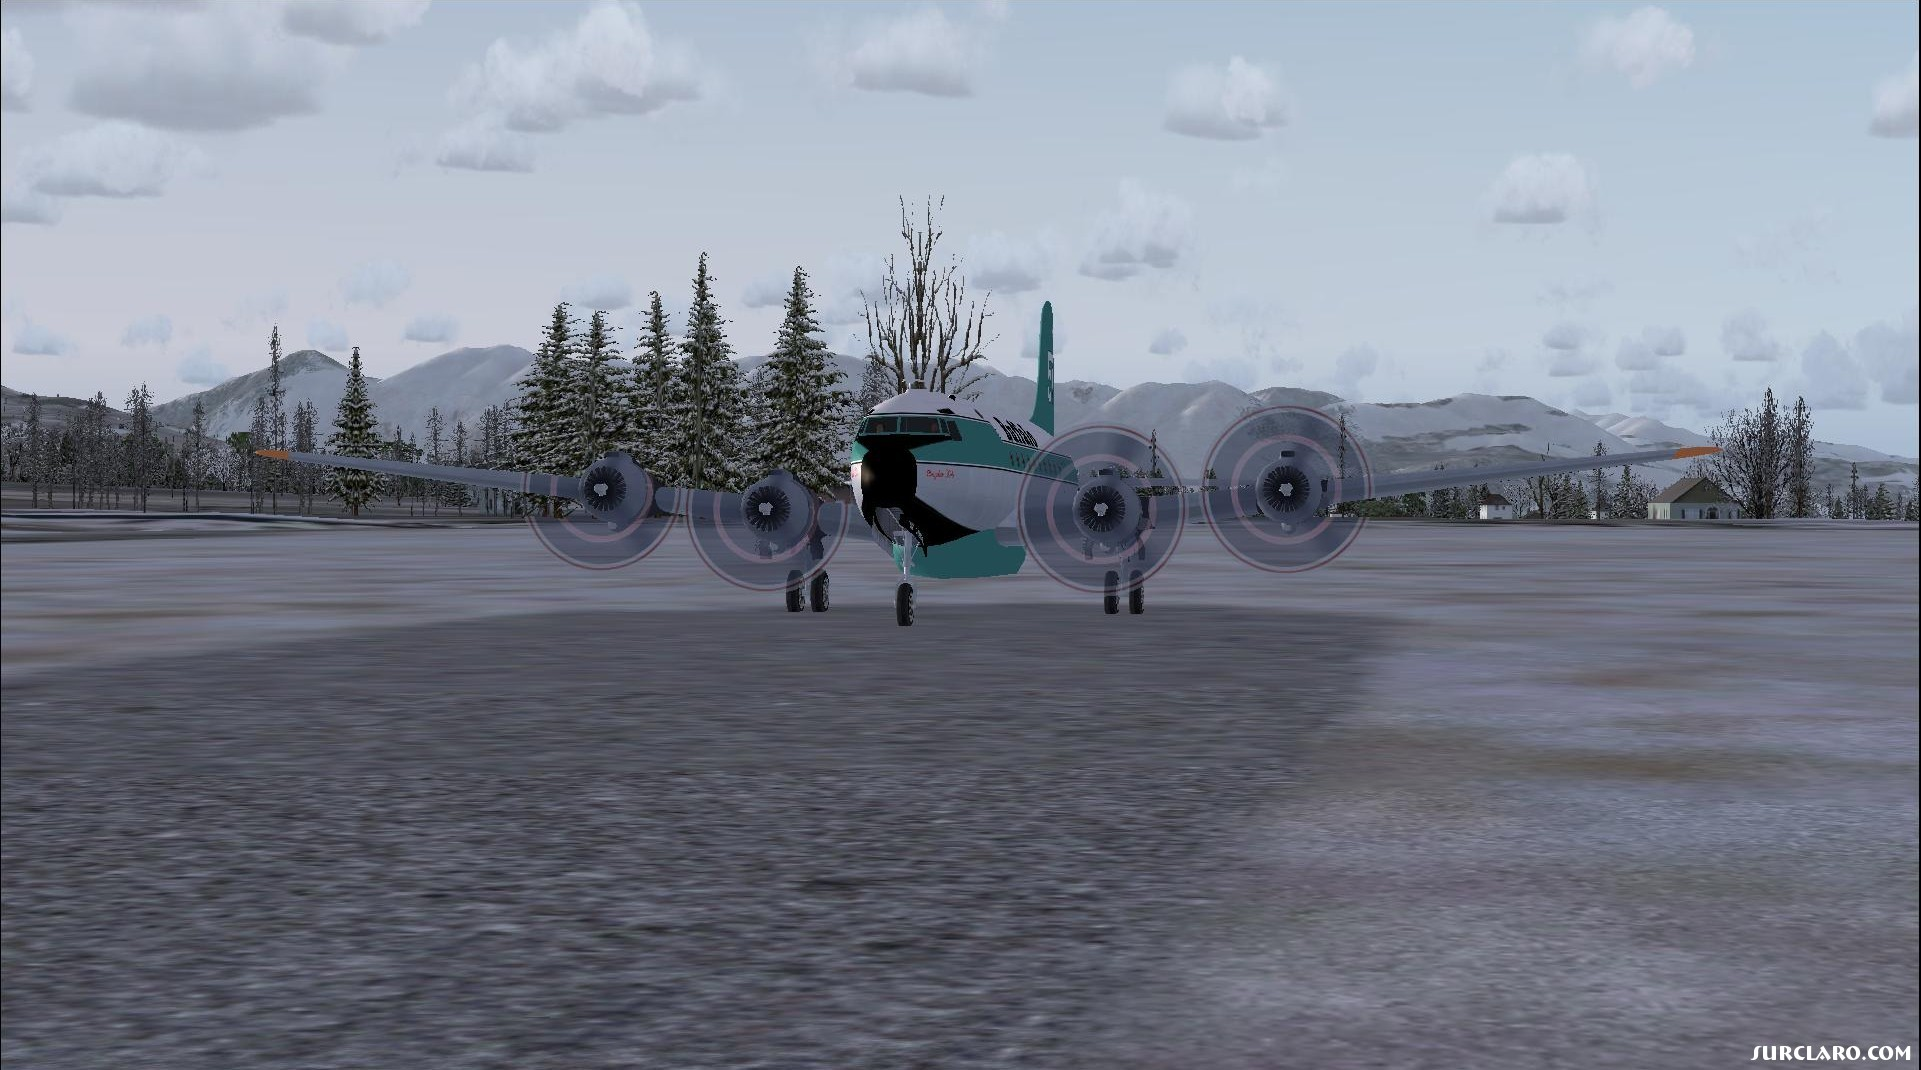 Buffalo DC-4 water tanker preparing to take off from a small strip in Alaska. - Photo 18135